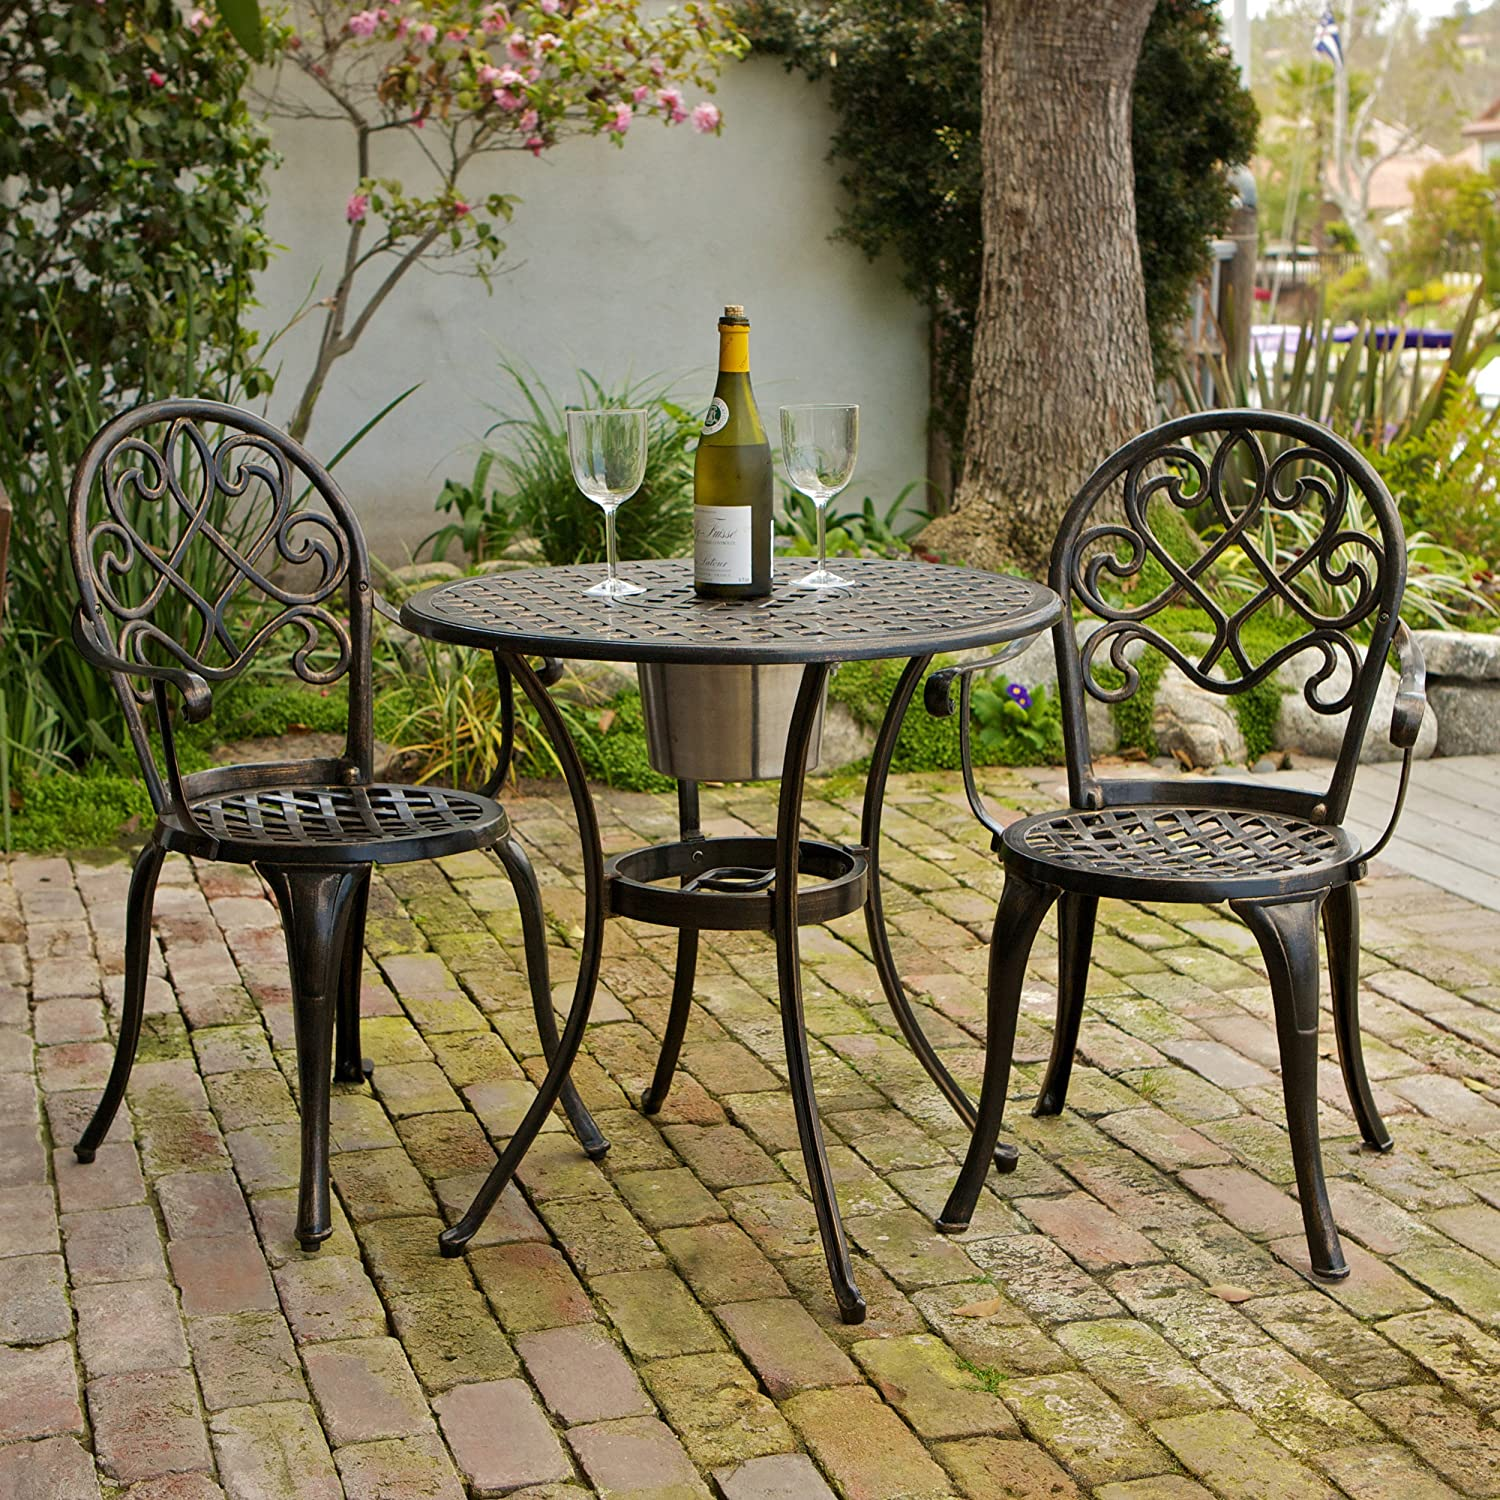 Christopher Knight Home 234795 Angeles CKH Outdoor Metal Bistro Set, Copper